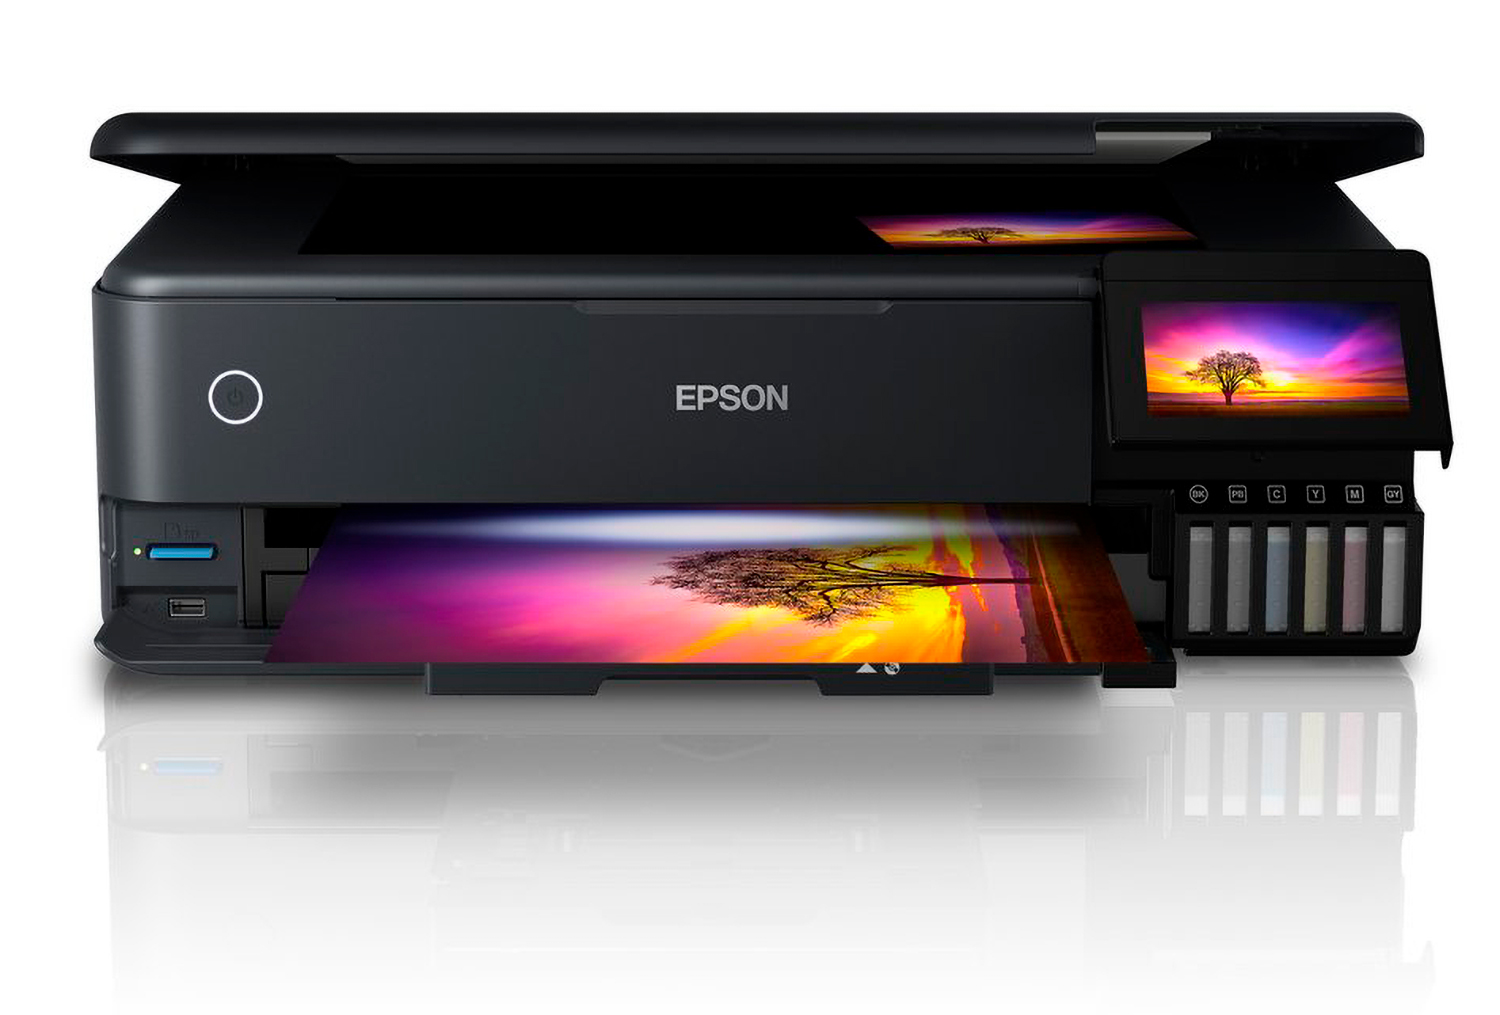 Photo of Epson ET-8550 printer